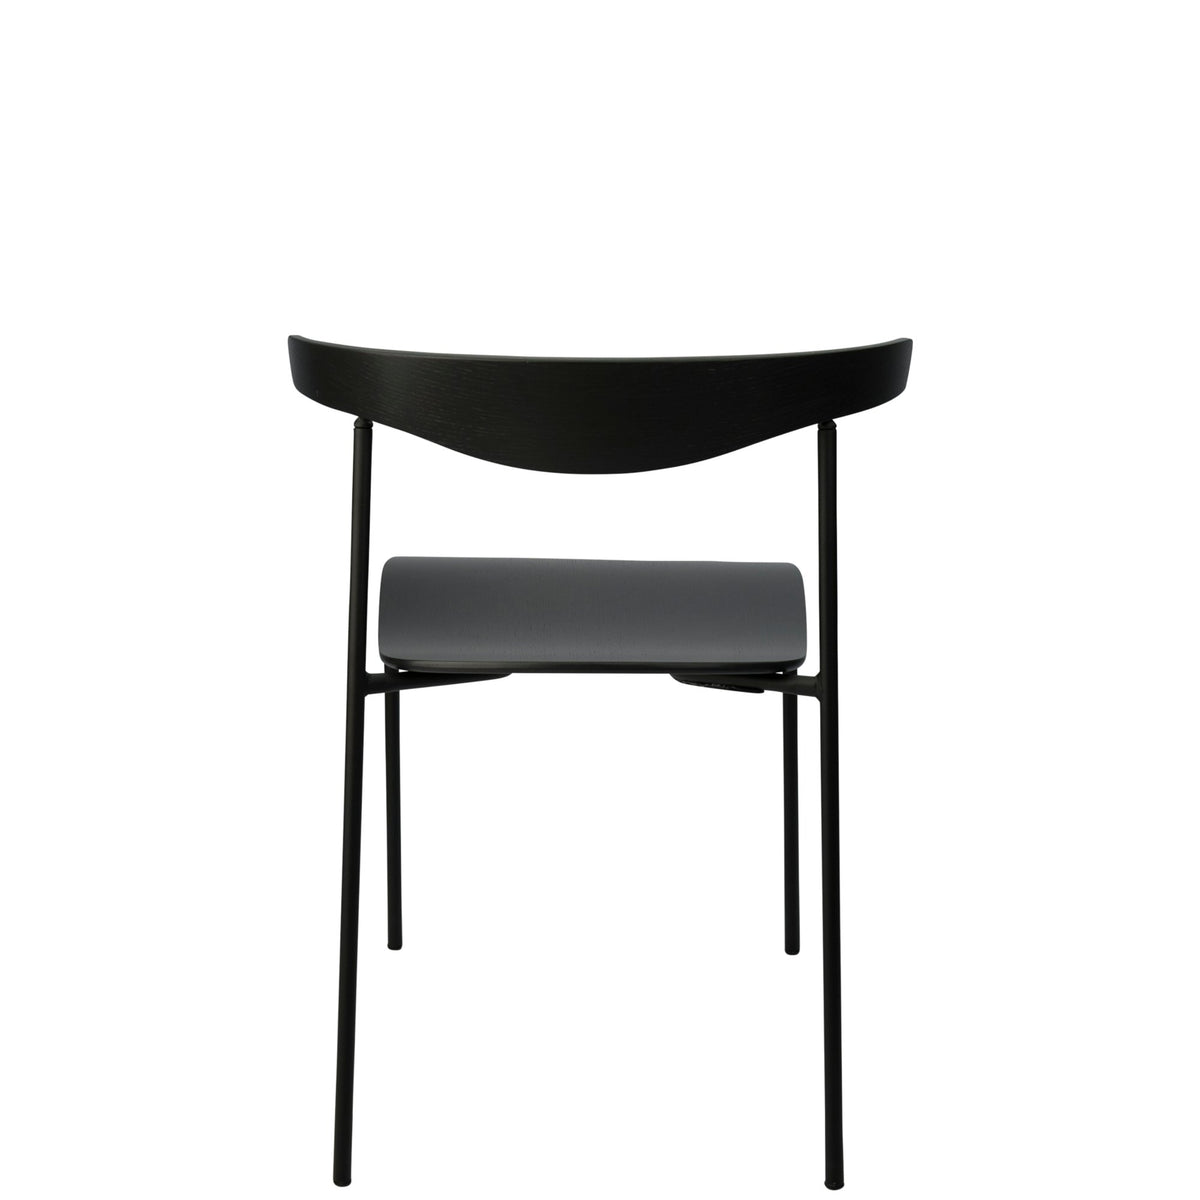 Edsbyn Office Hug Chair Black Stained Oak with Black Base